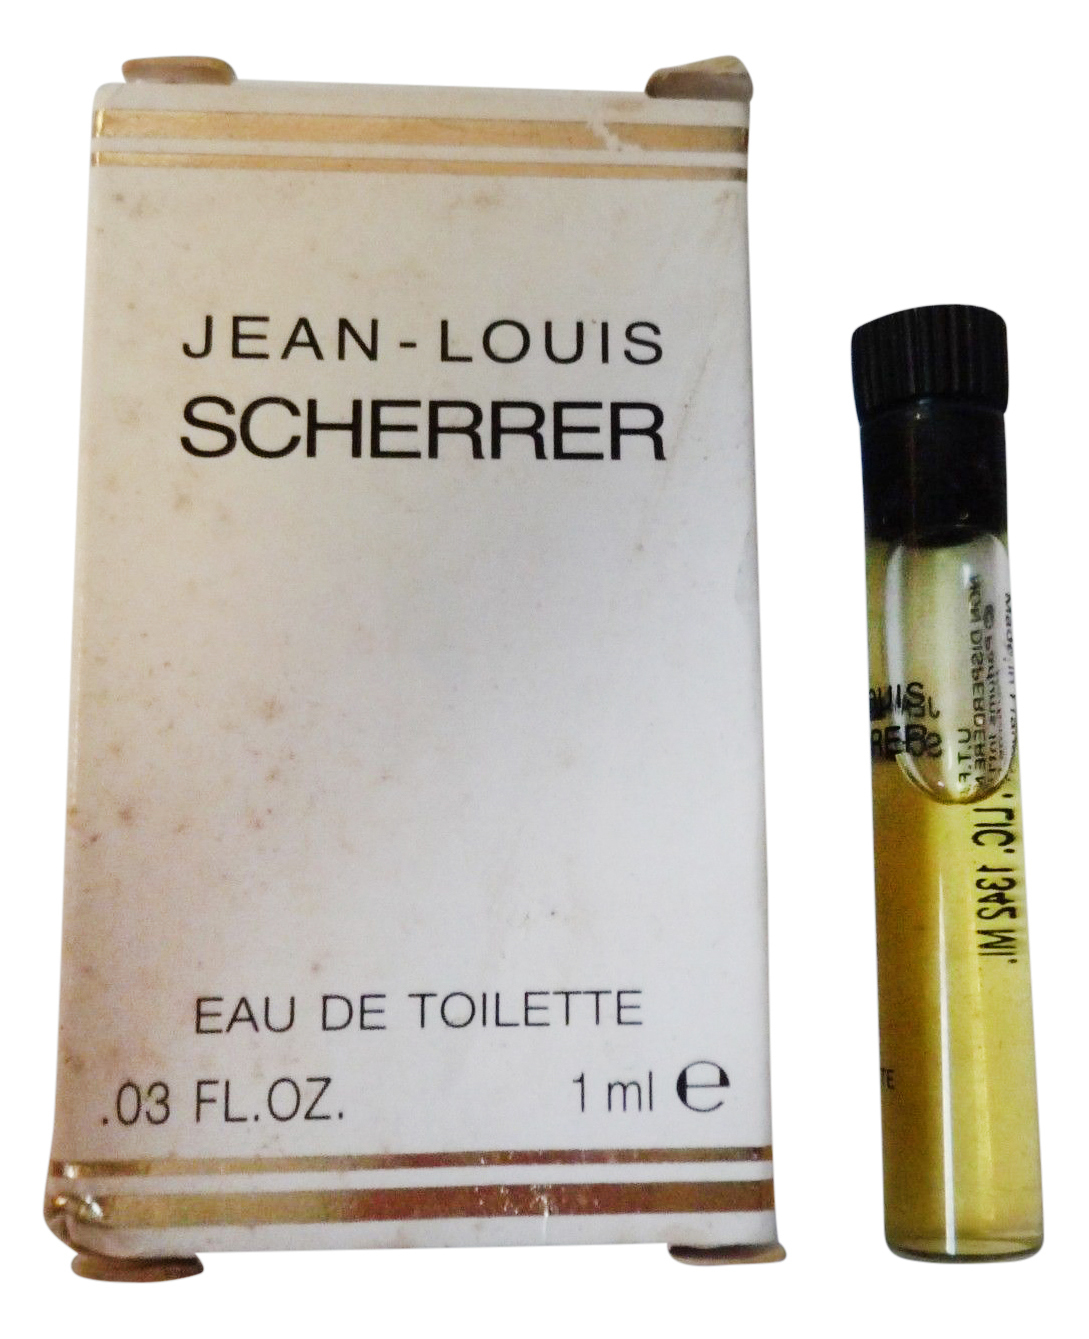 jean louis scherrer eau de toilette reviews and rating. Black Bedroom Furniture Sets. Home Design Ideas